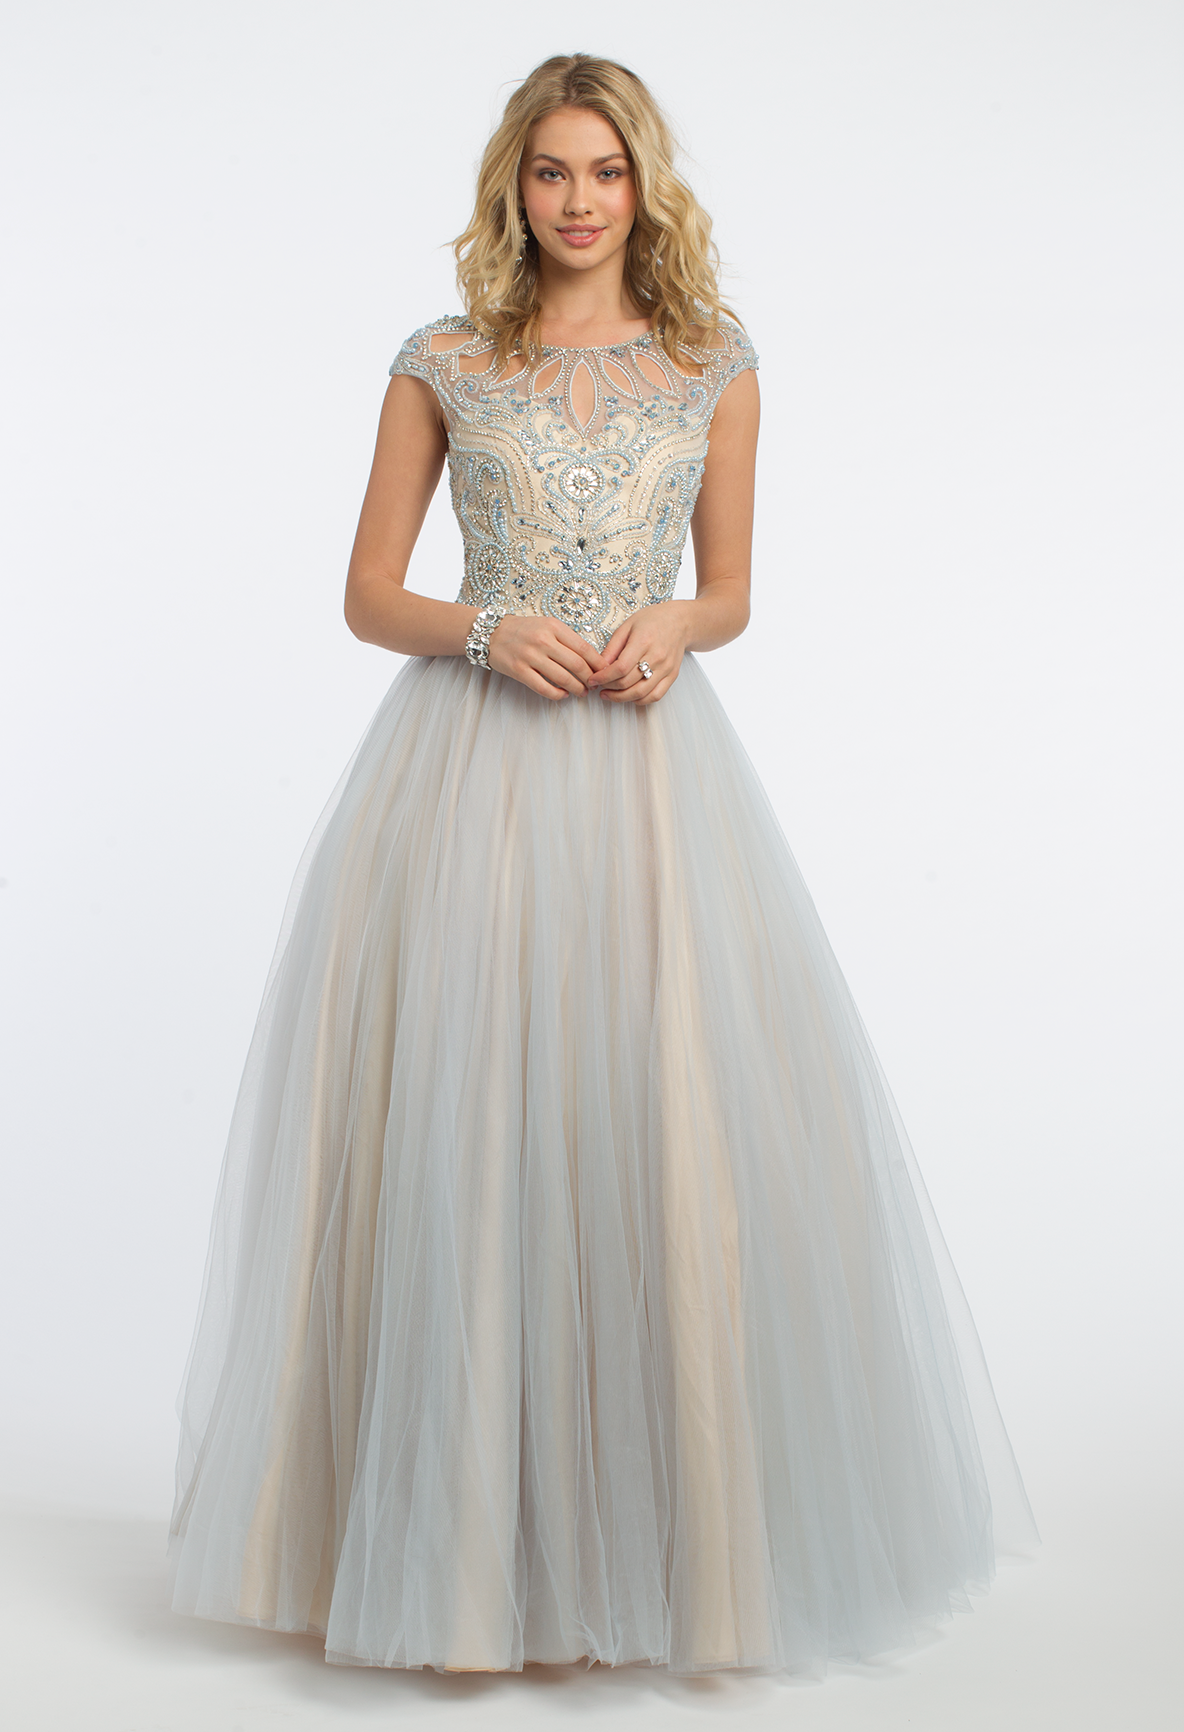 Beaded Cap Sleeve Two-Tone Tulle Ballgown Dress | Stunning prom ...